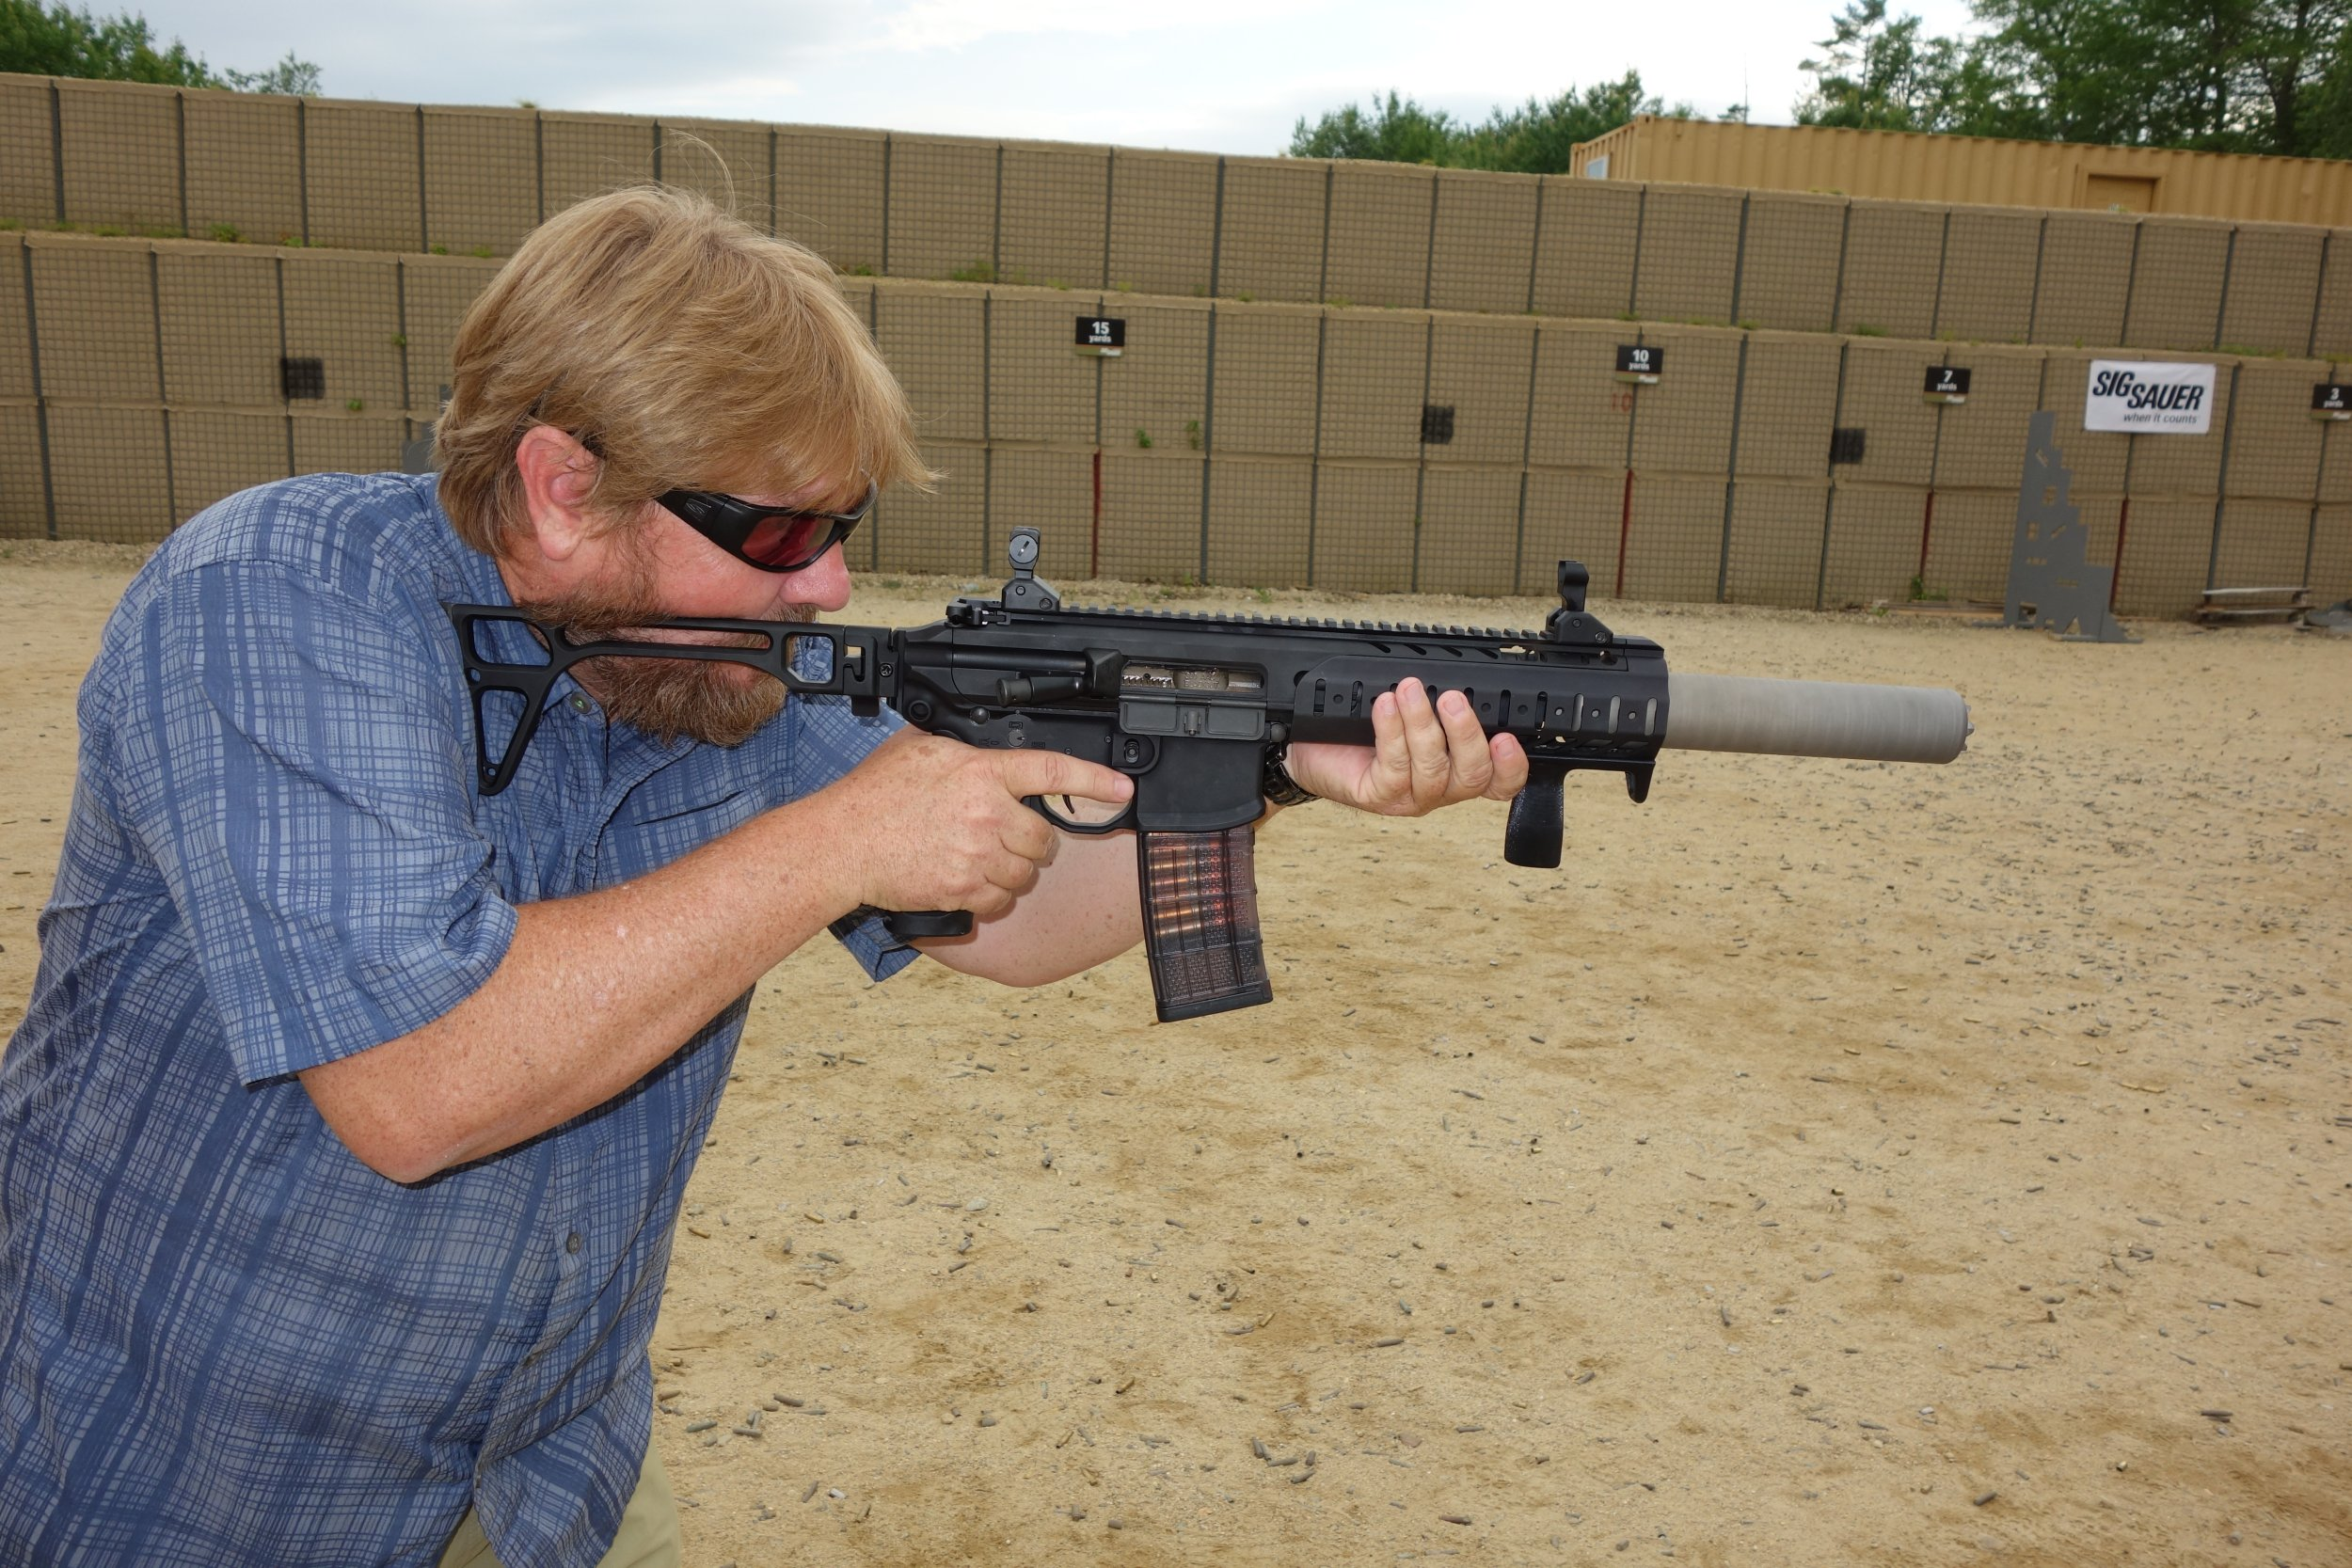 SIG SAUER SIG MCX Multi Caliber AR Assault Rifle Carbine SBR 300 Blackout 300BLK Suppressed SIG SAUER Academy New Media Writers Event 2014 David Crane DefenseReview.com DR 3 SIG MCX LVAW (Low Visibility Assault Weapon) Black Mamba Suppressed 300 Blackout (300BLK) Piston AR Assault SBR/PDW (Short Barreled Rifle/Personal Defense Weapon) Fired on Full Auto and Semi Auto with Subsonic and Supersonic Ammo During SIG SAUER New Media Writers Event (Video!)